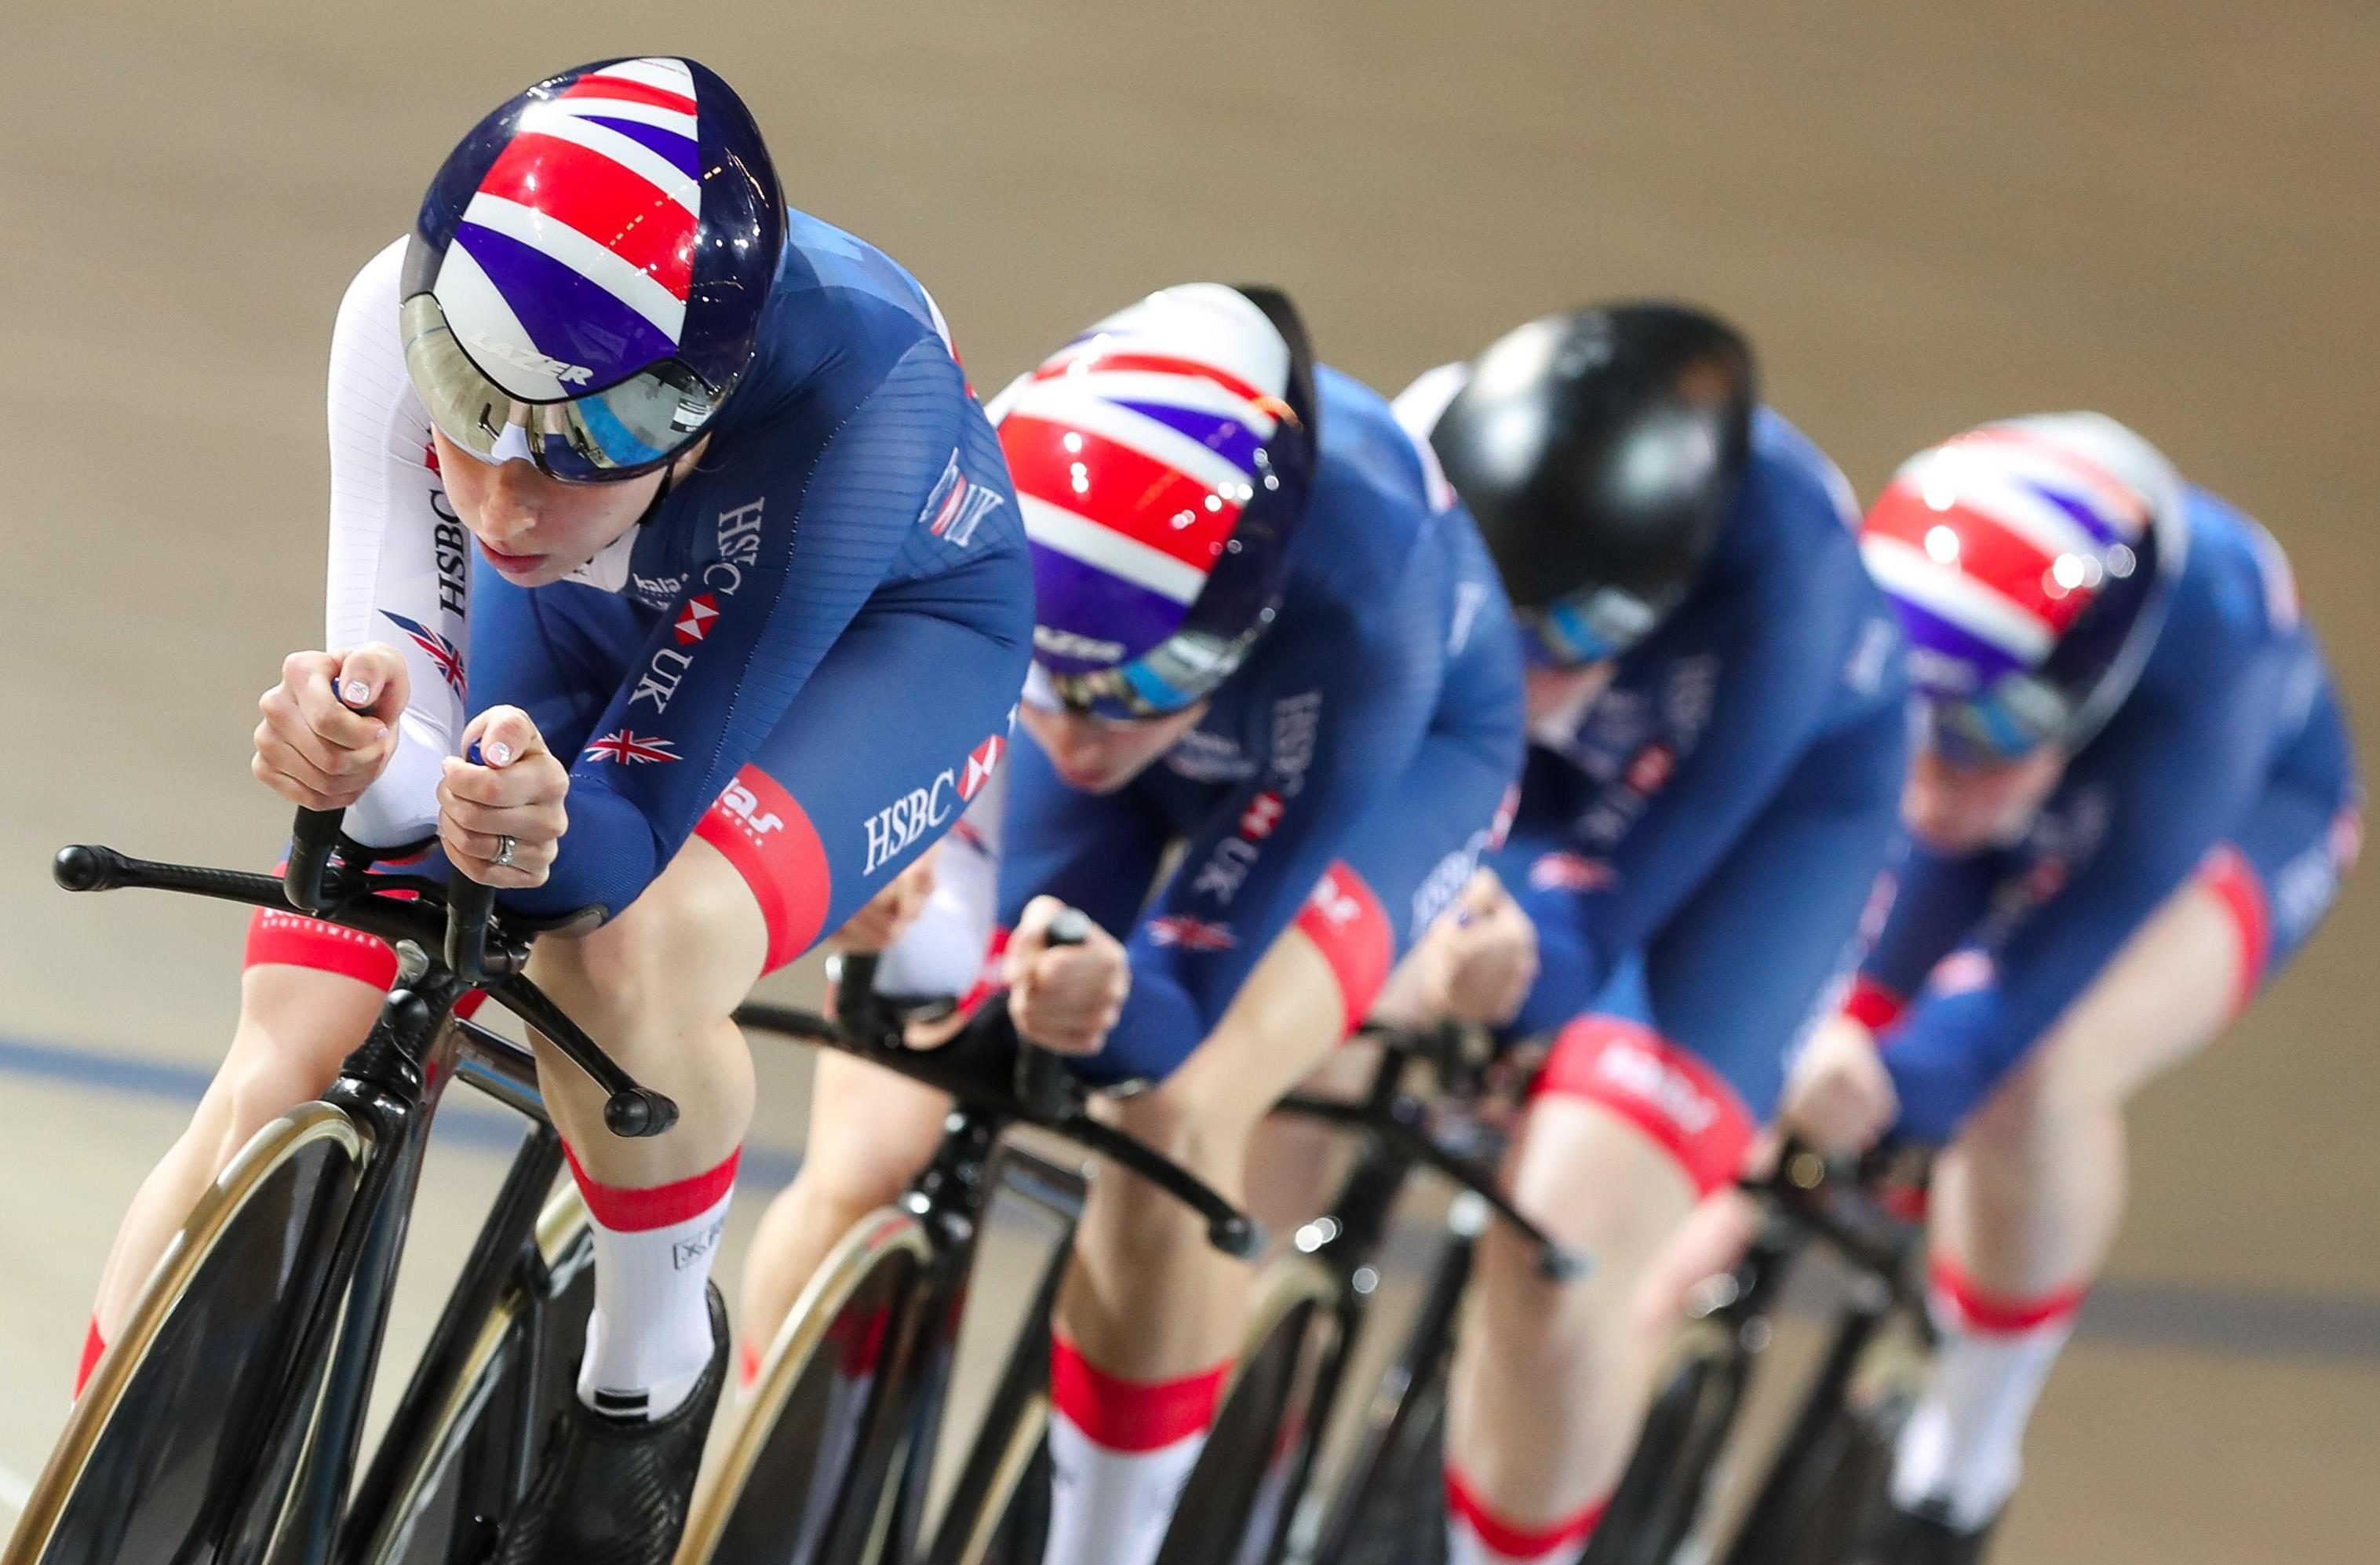 Laura Kenny, left, and her Great Britain pals claimed silver in the women's team pursuit